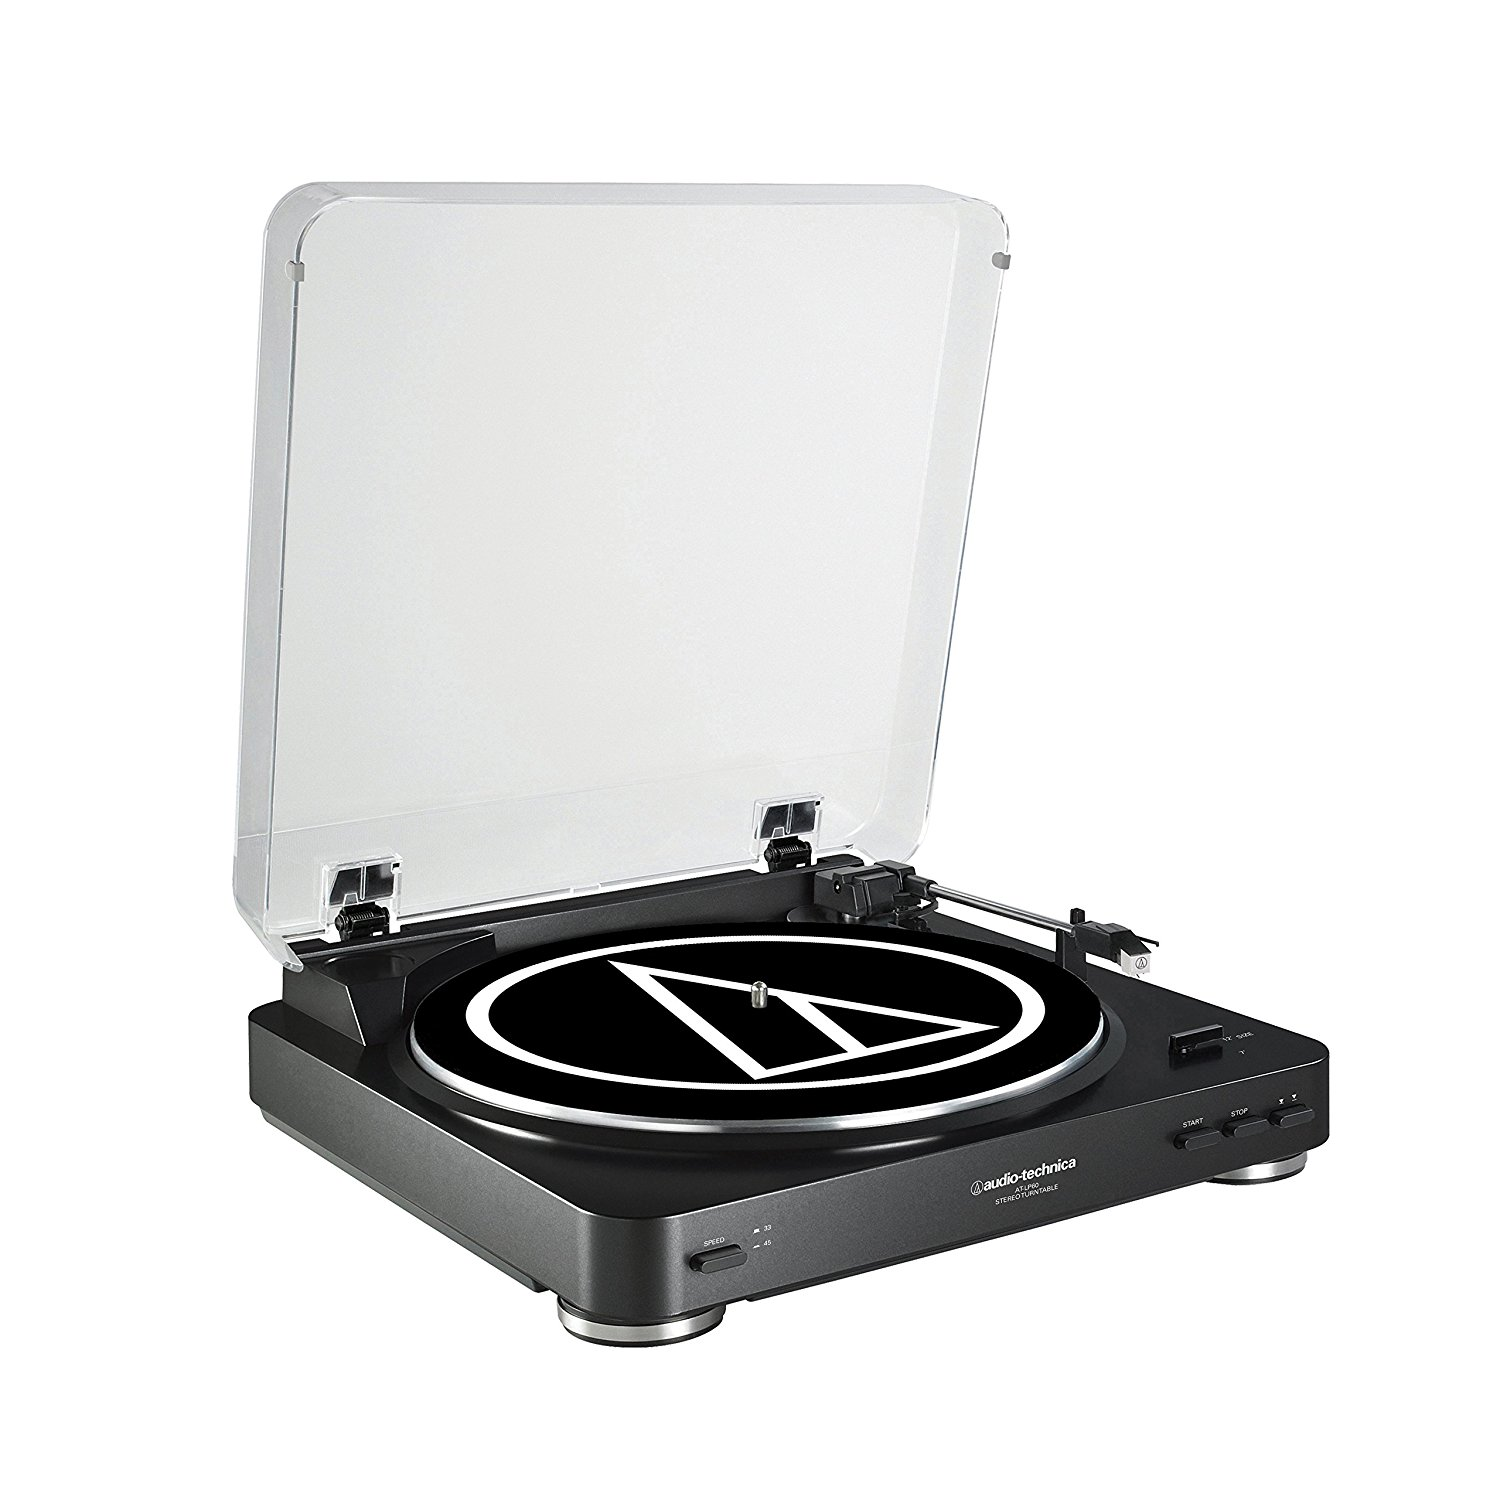 Audio Technica AT-LP60BK Turntable Black Friday Deals